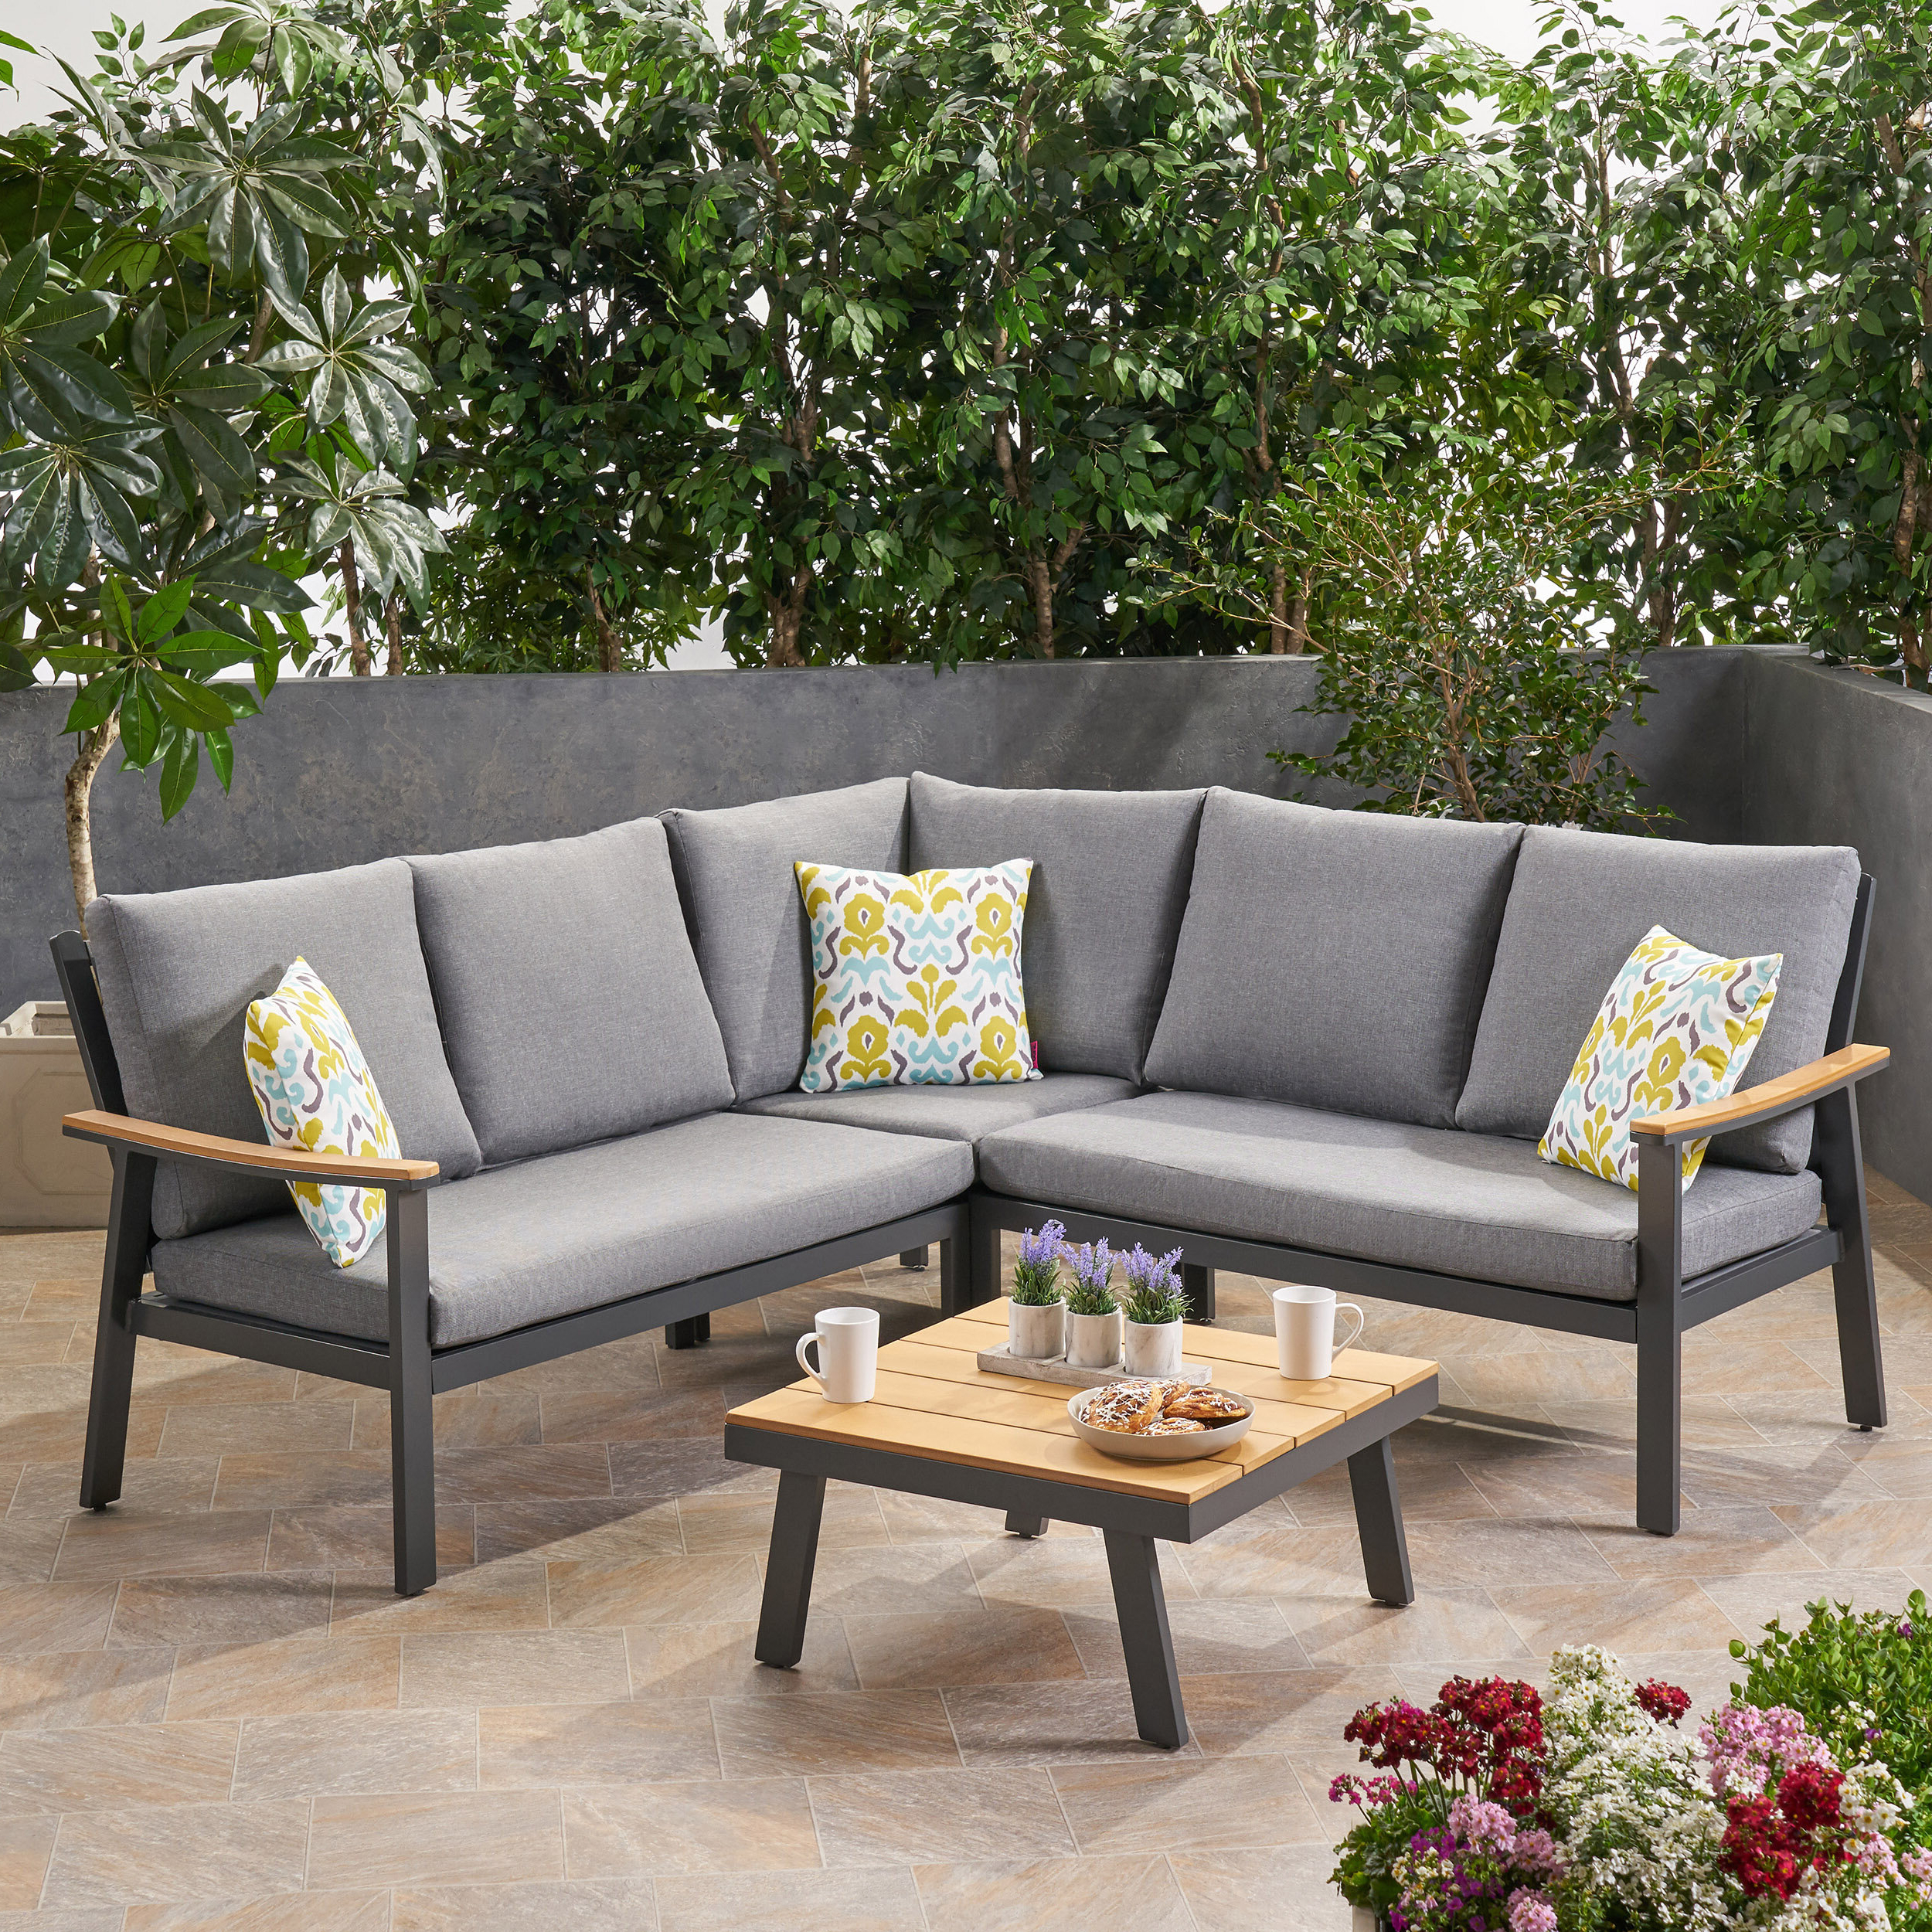 2019 Jimmie 3 Piece Sectionals Seating Group With Cushions Within Ivy Bronx Arocho Outdoor 4 Piece Sectional Seating Group (View 2 of 25)